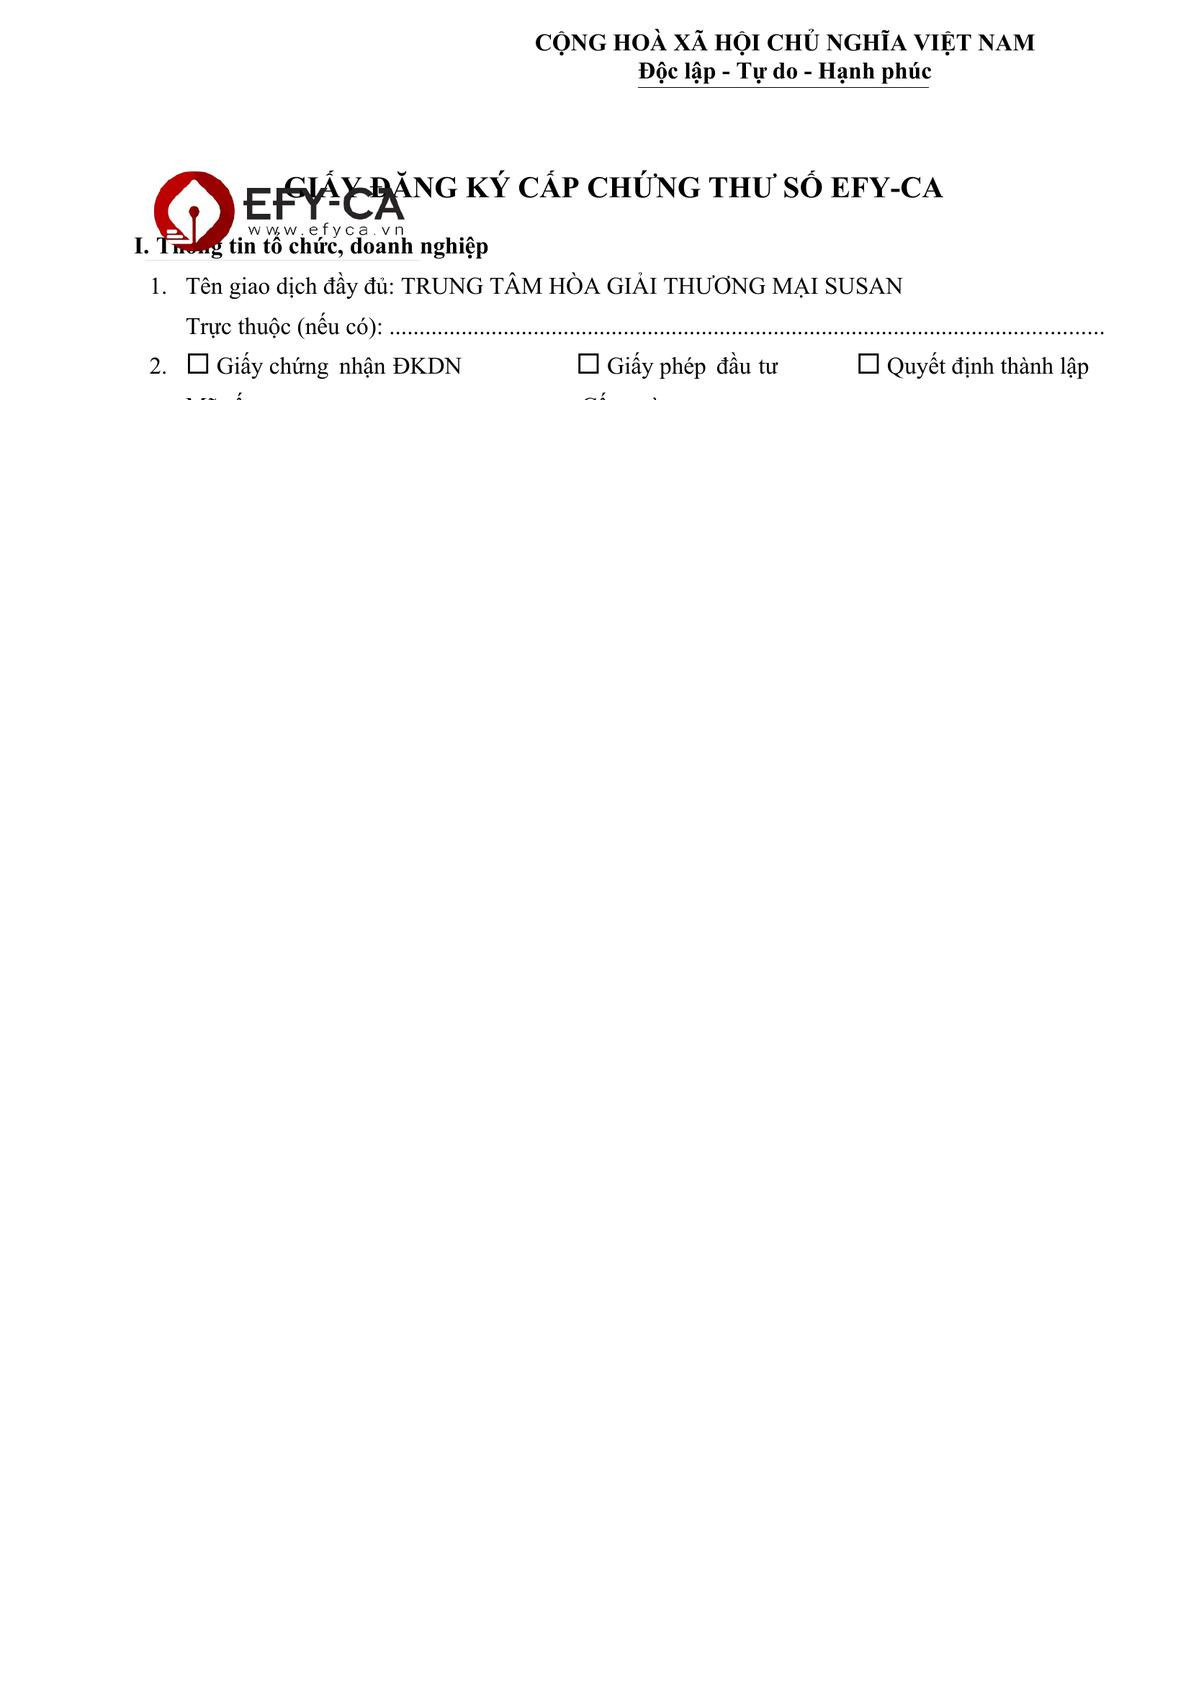 The form to register the digital signature -0